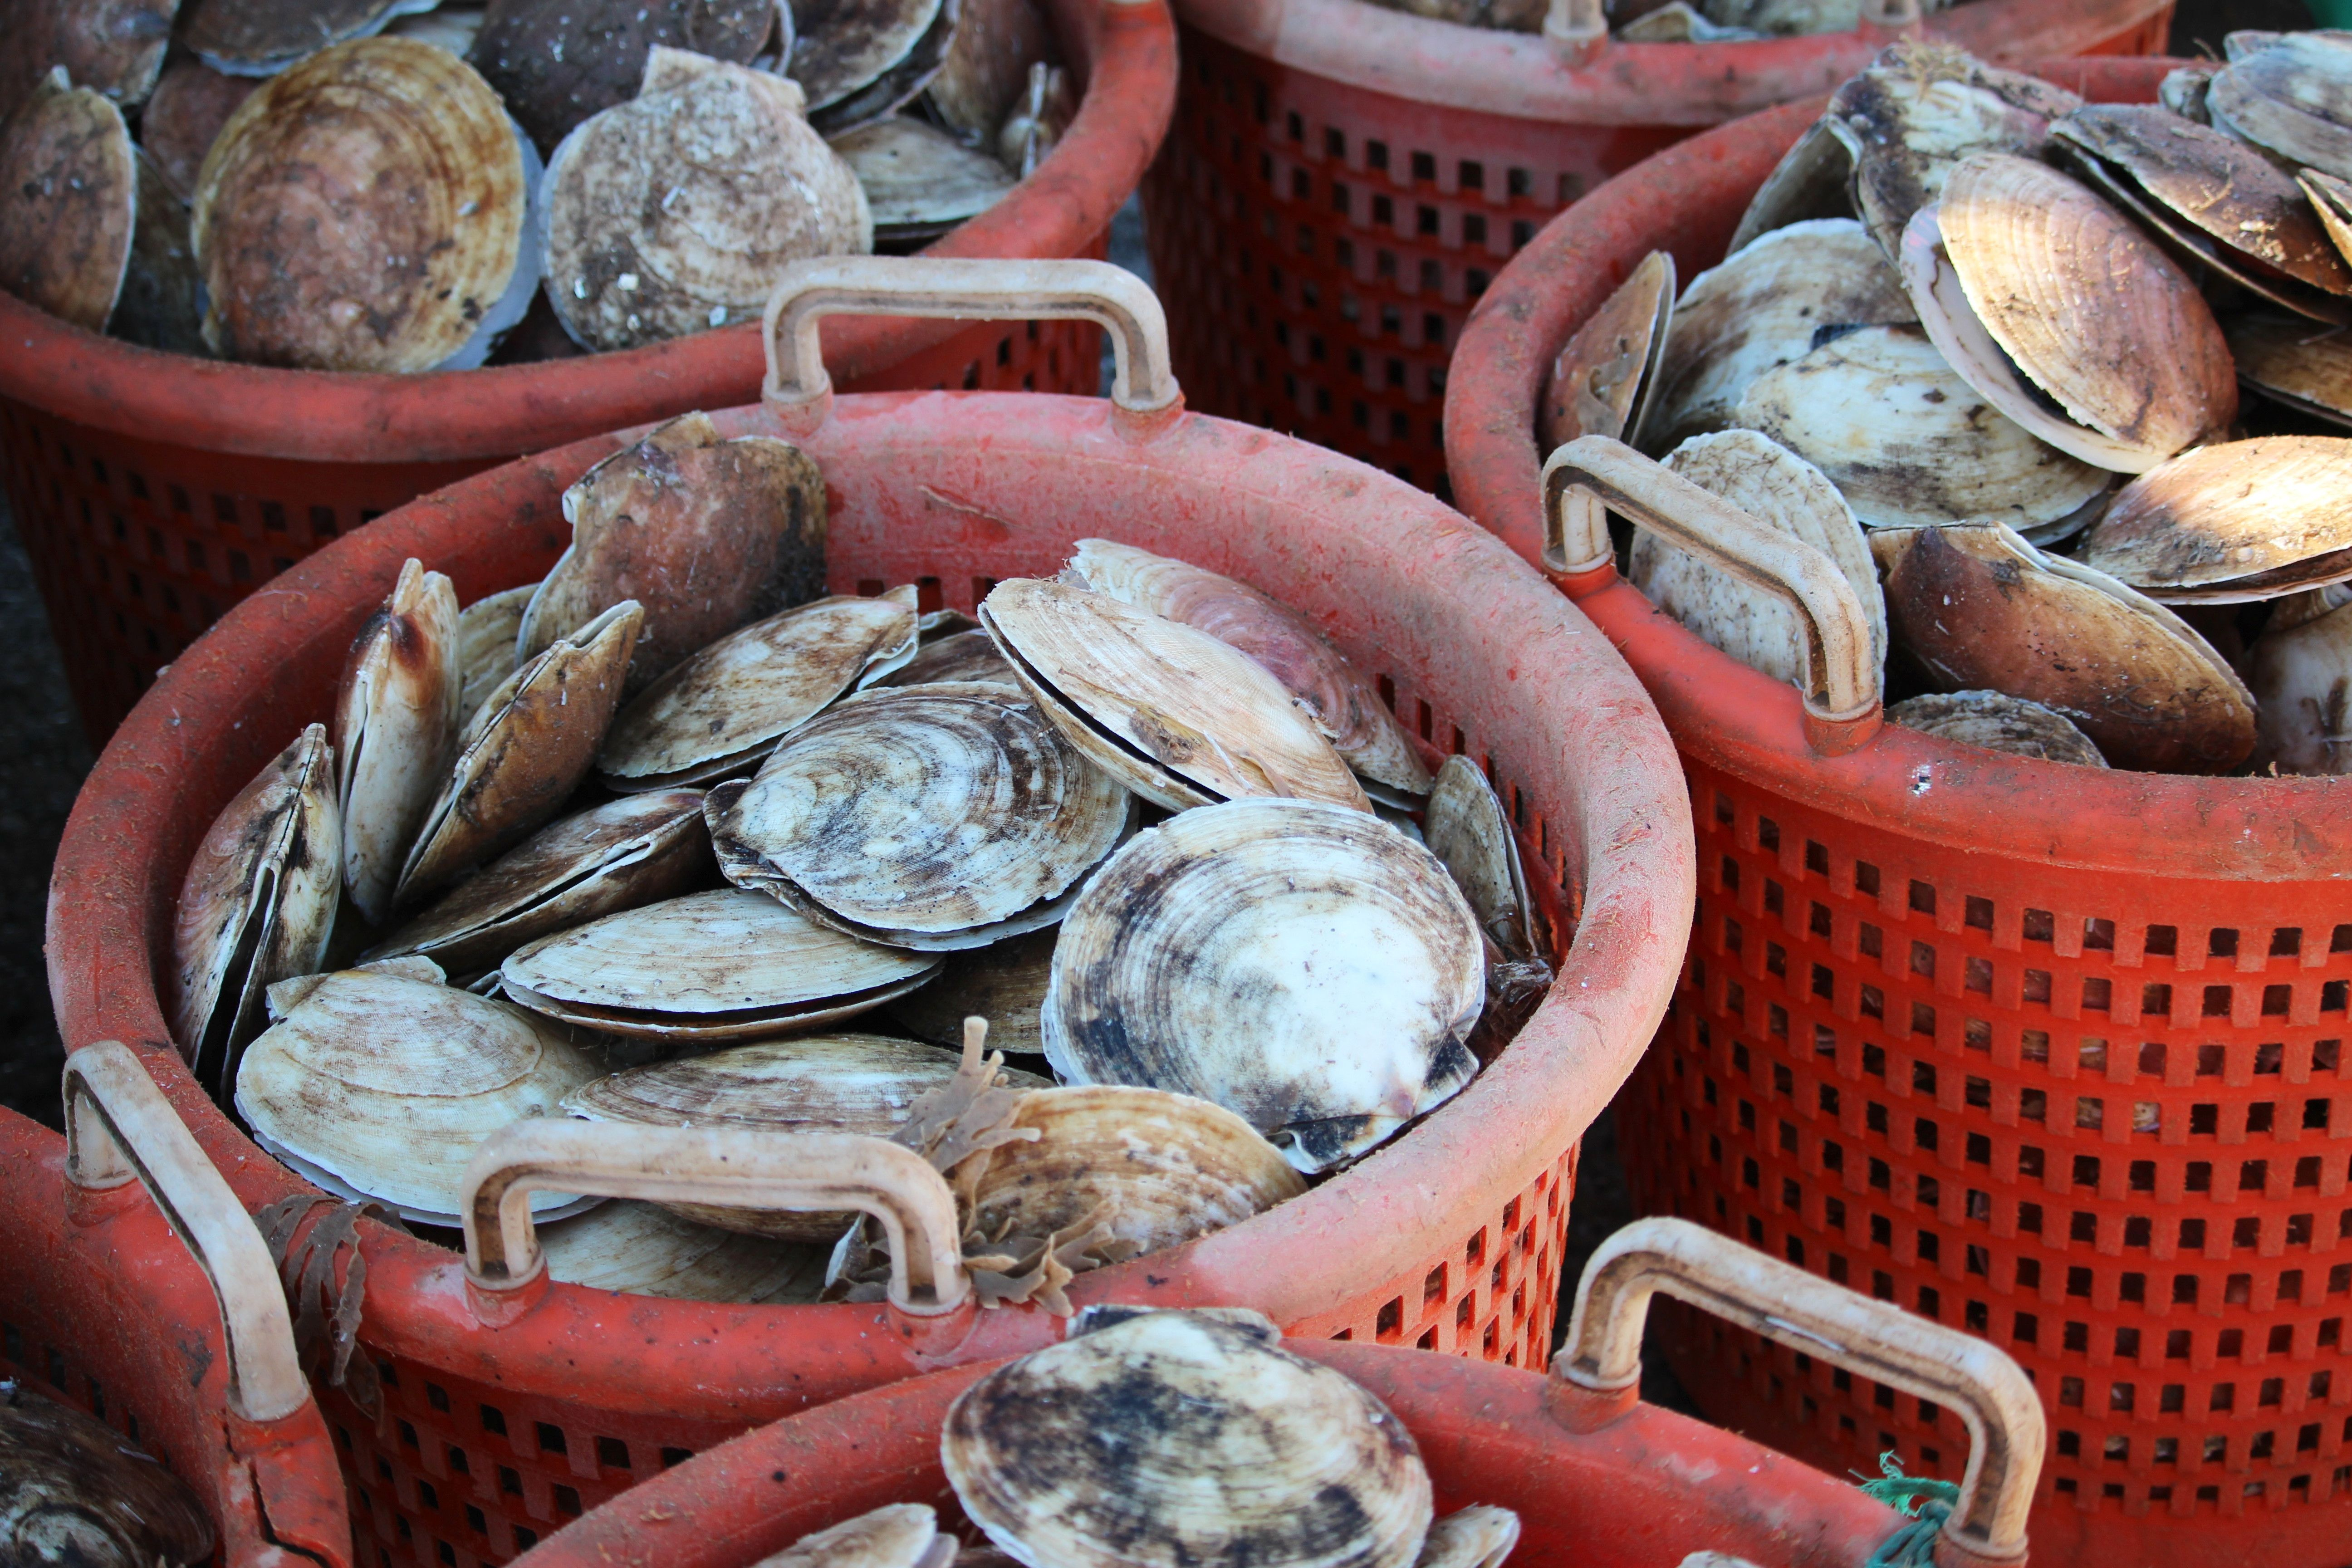 a seafood plant is working with ibm to track the provenance of fresh scallops using blockchain technology the ra food tracking fresh scallops seafood market a seafood plant is working with ibm to track the provenance of fresh scallops using blockchain technology the ra food tracking fresh scallops seafood market